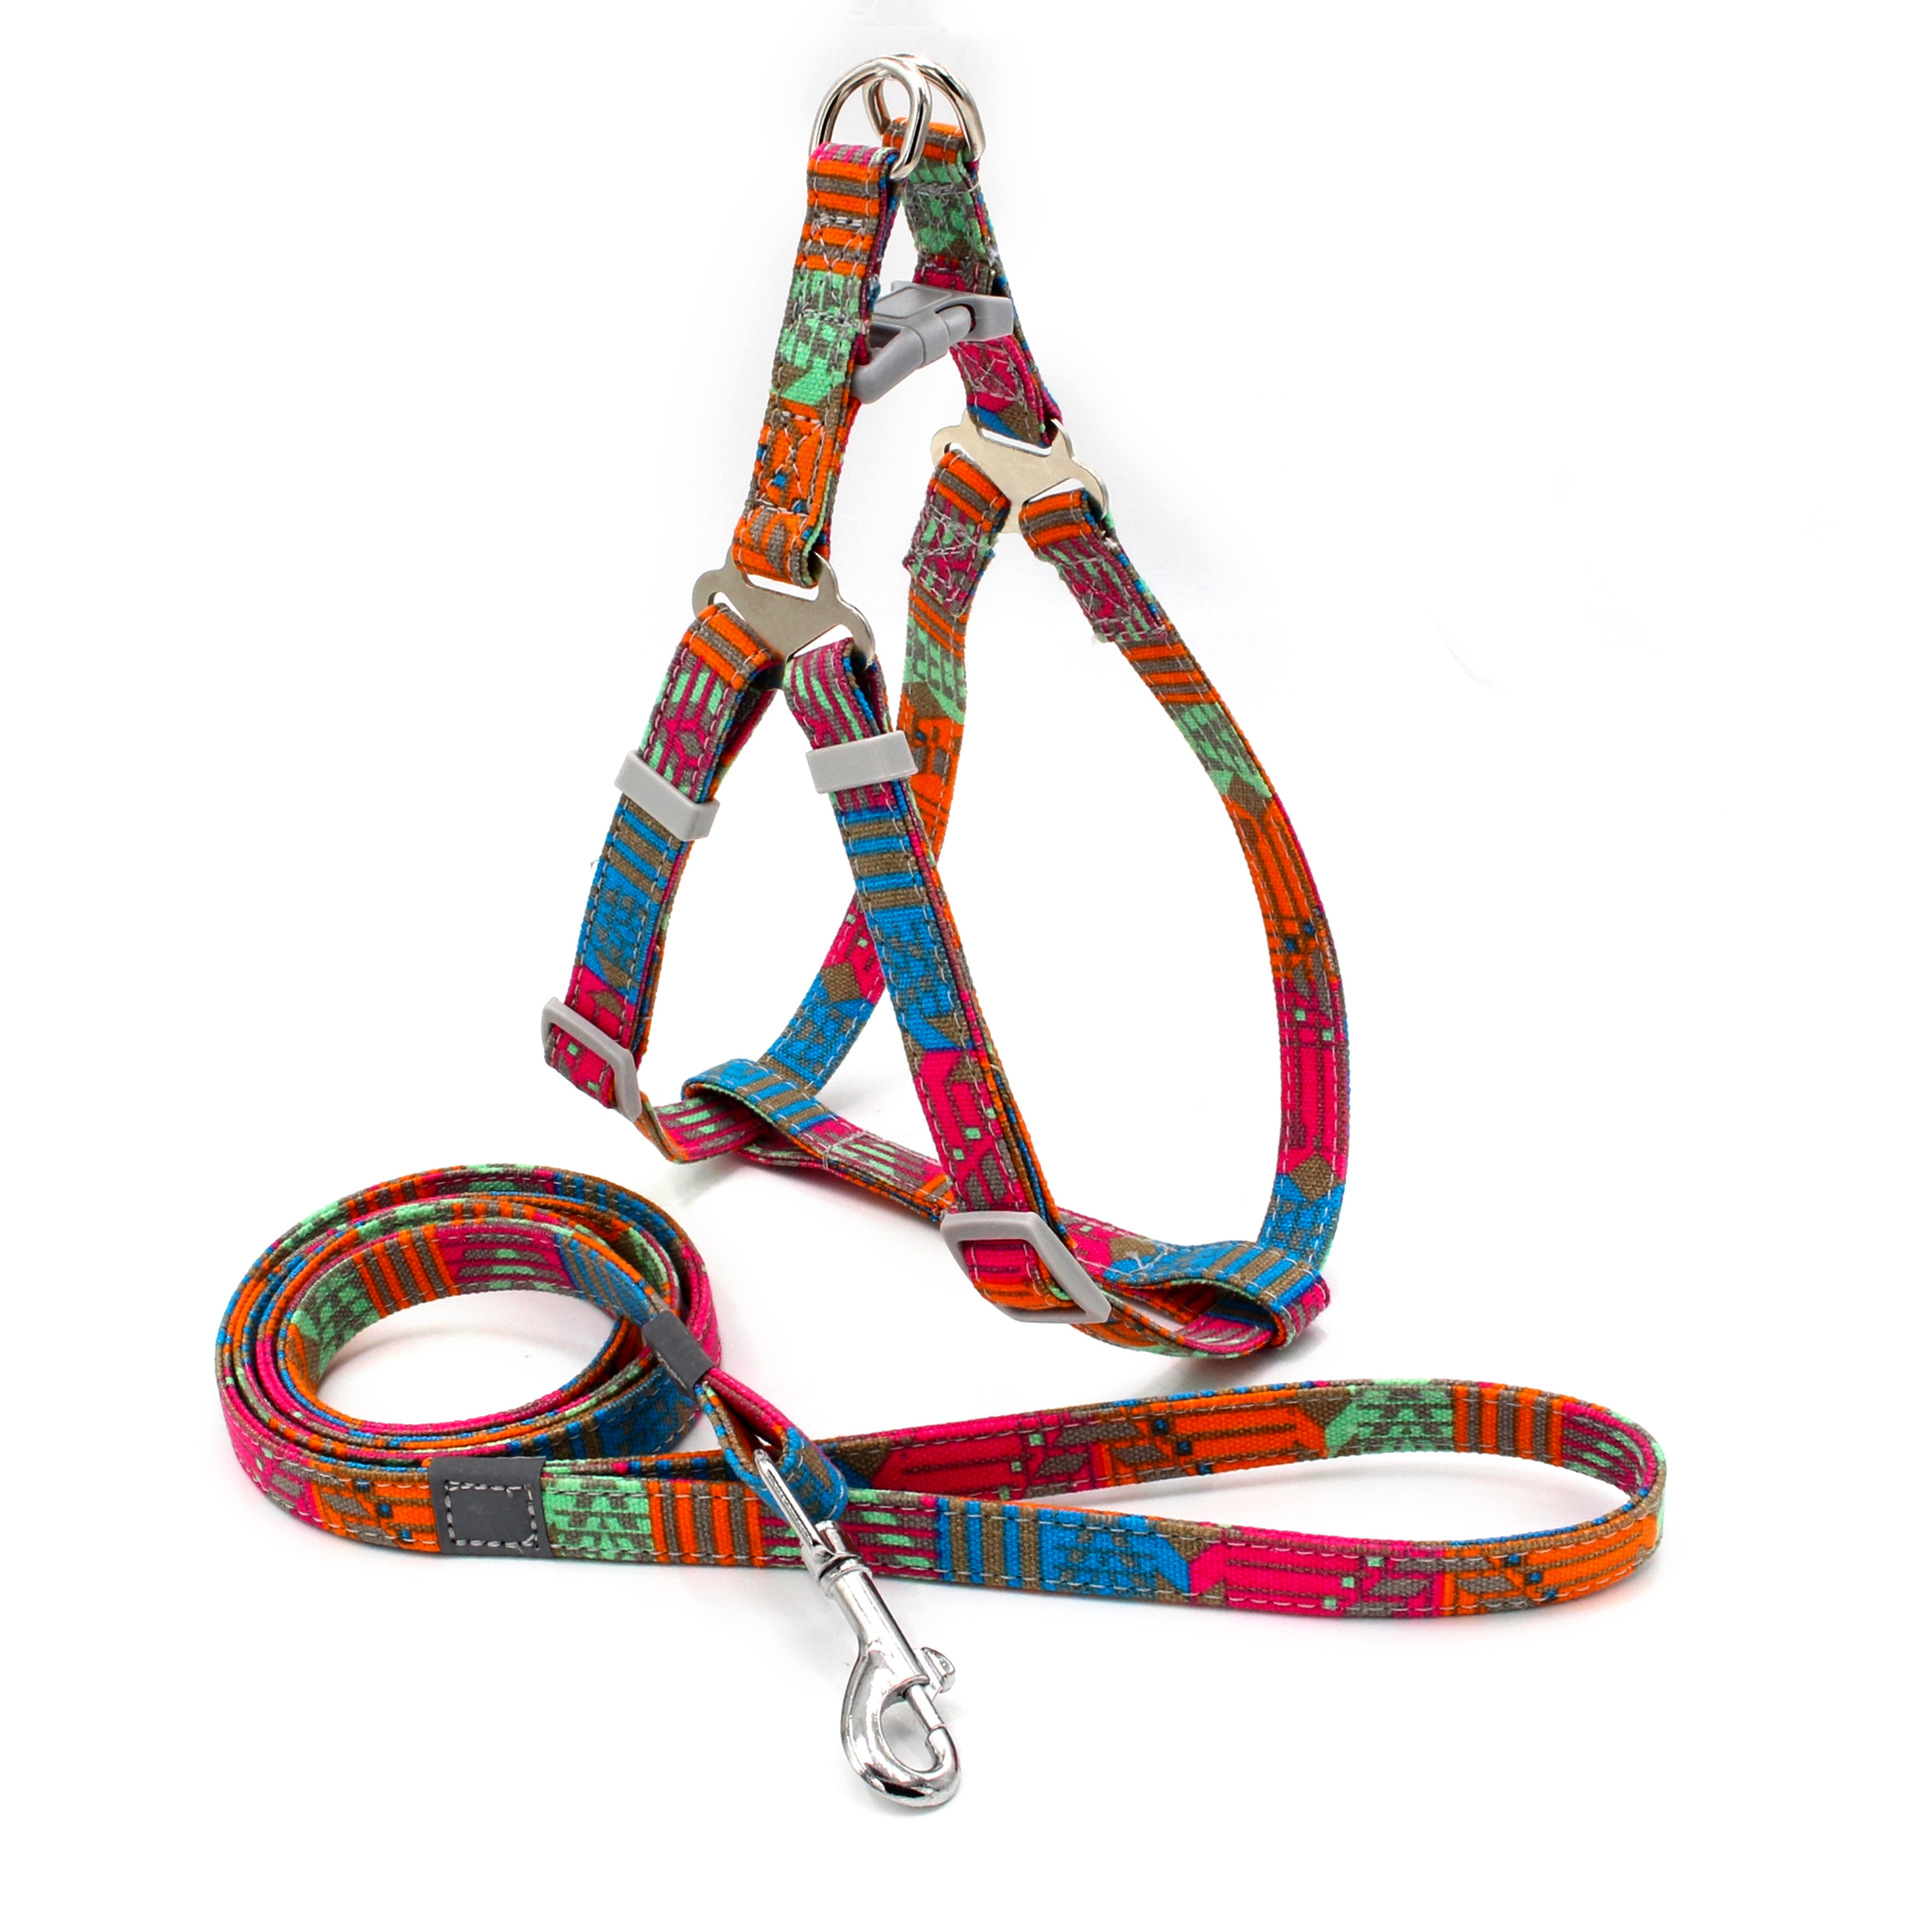 New Style Proof Punch Printed Pet Traction Rope Reflective Dog Chest Strap Set Cat Rope Pet Supplies